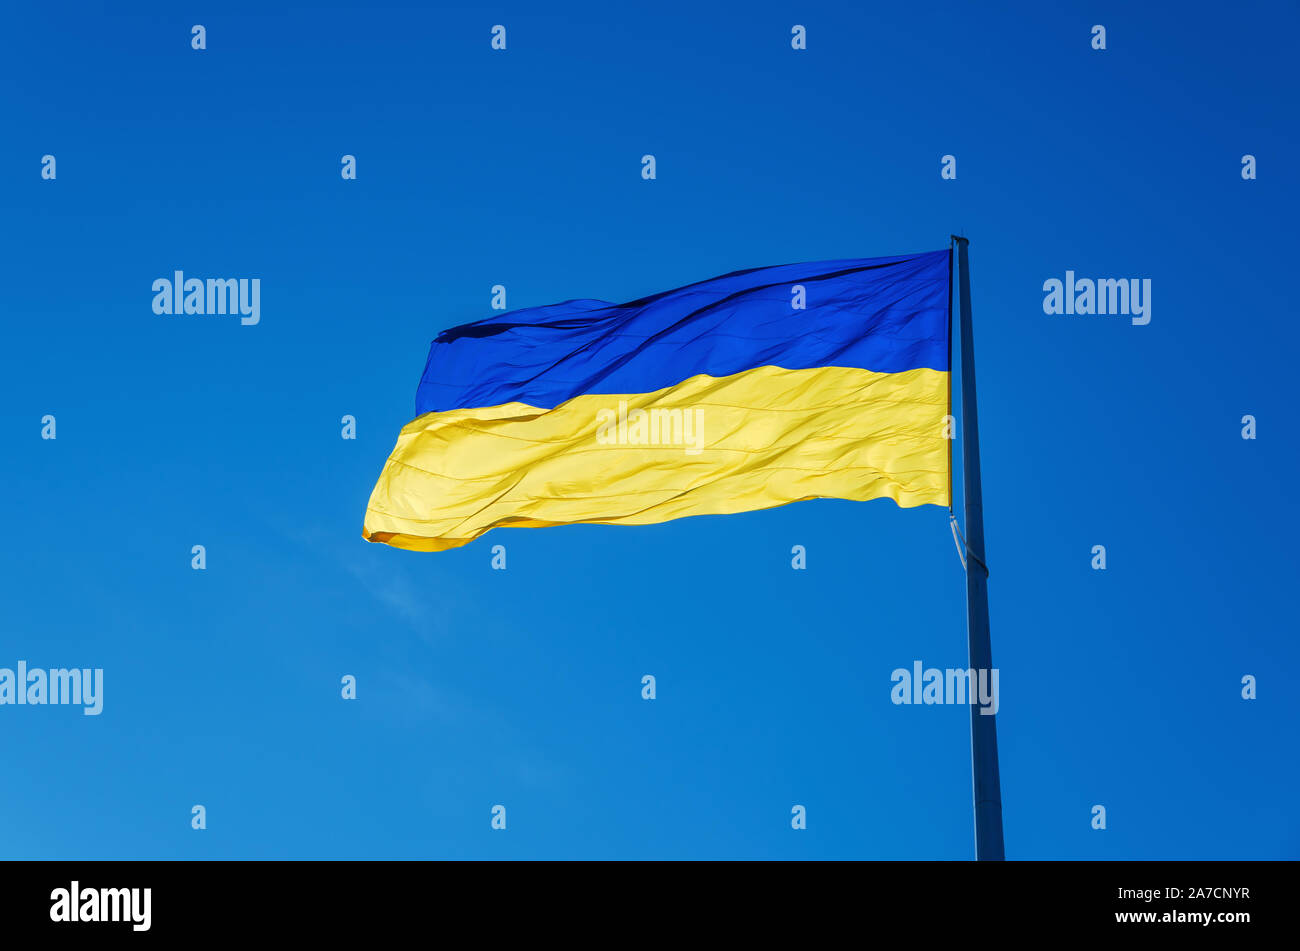 Ukrainian flag flying on a flagpole in against the blue sky on a warm summer day Stock Photo